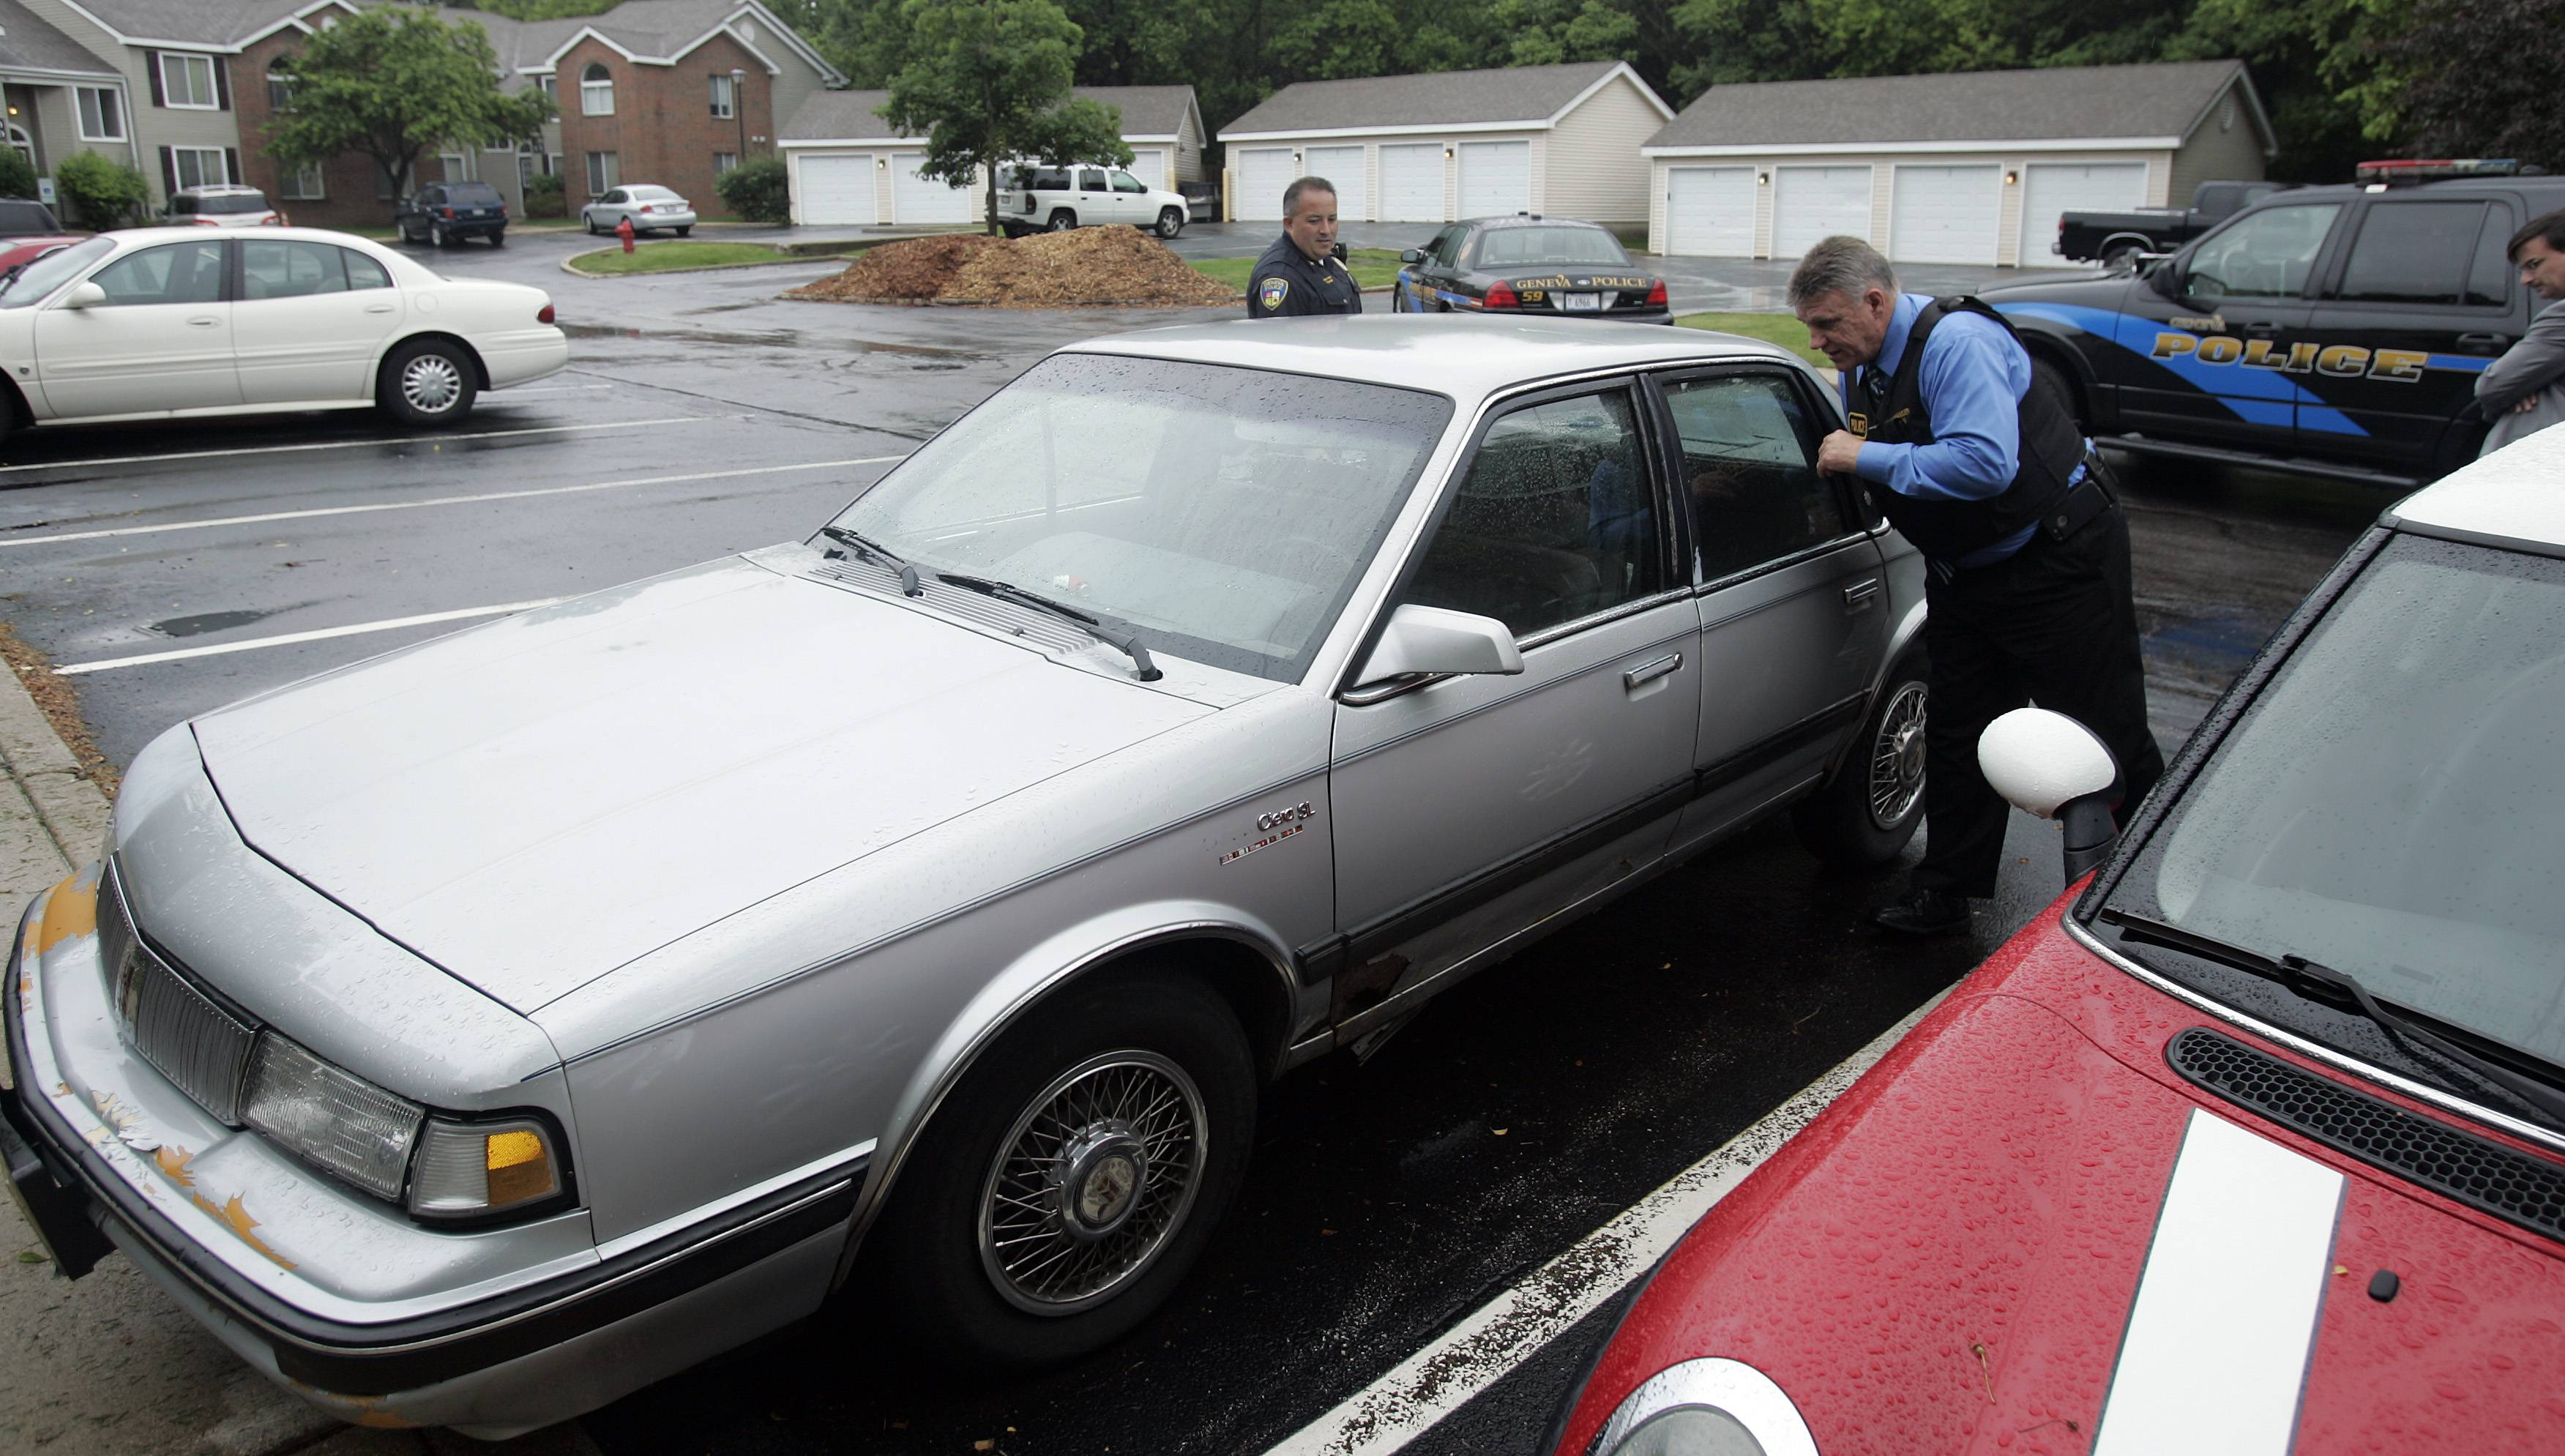 St. Charles police Cmdr. Jerry Gatlin looks over a vehicle that might have been used by people suspected in a series of local robberies, the most recent of which was early Wednesday in Batavia. The car was found at a Geneva apartment complex.